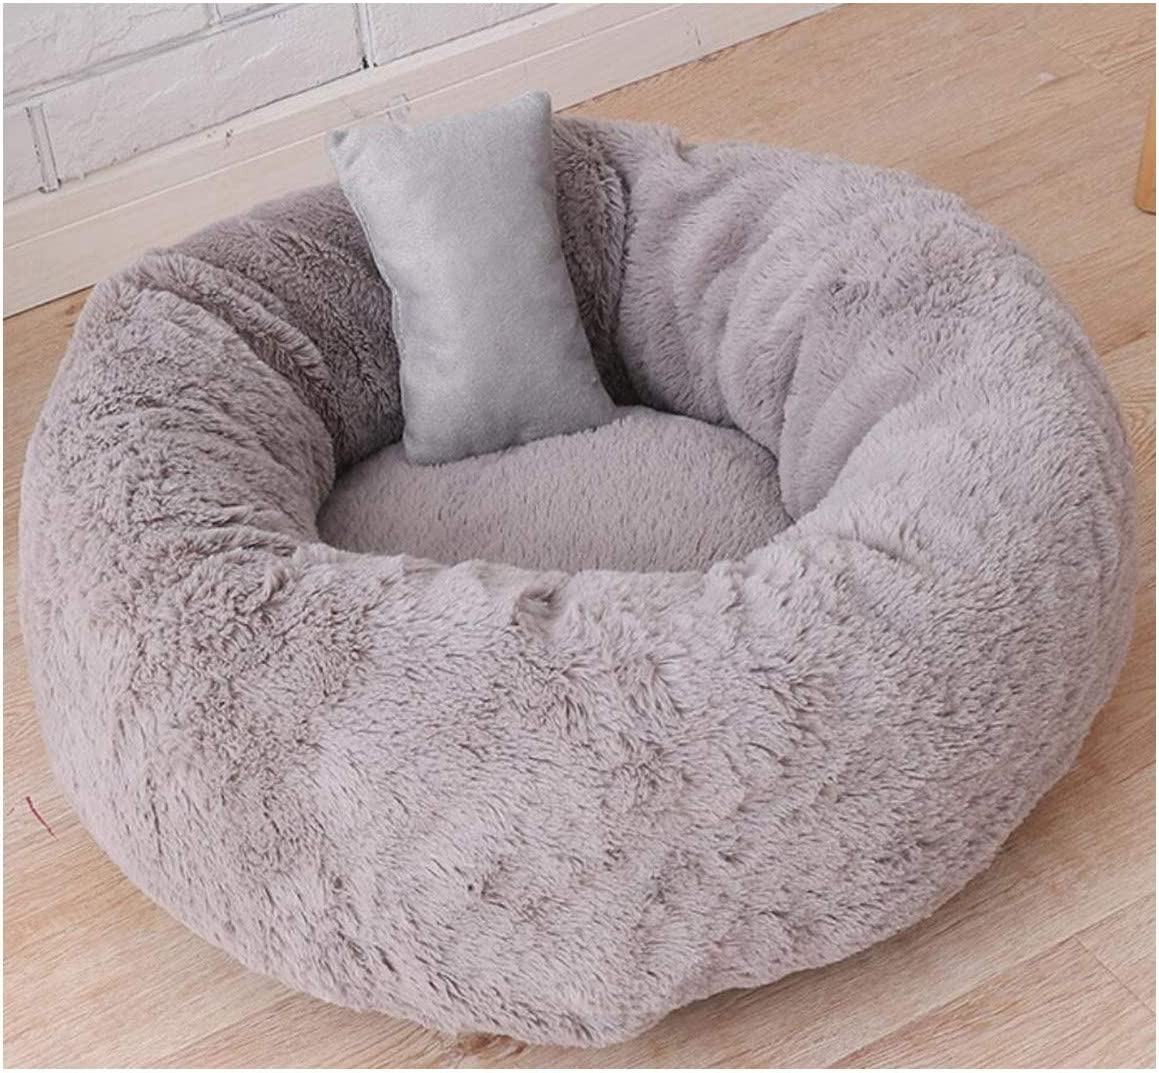 Removable Foot Claw Round Shape Pet Dog Beds Cat Rest House Cattery Warm Next Puppy Pets Sleeping Sofa Cats Mat Cushion S/M/L,Round Grey 2,L (As Description)